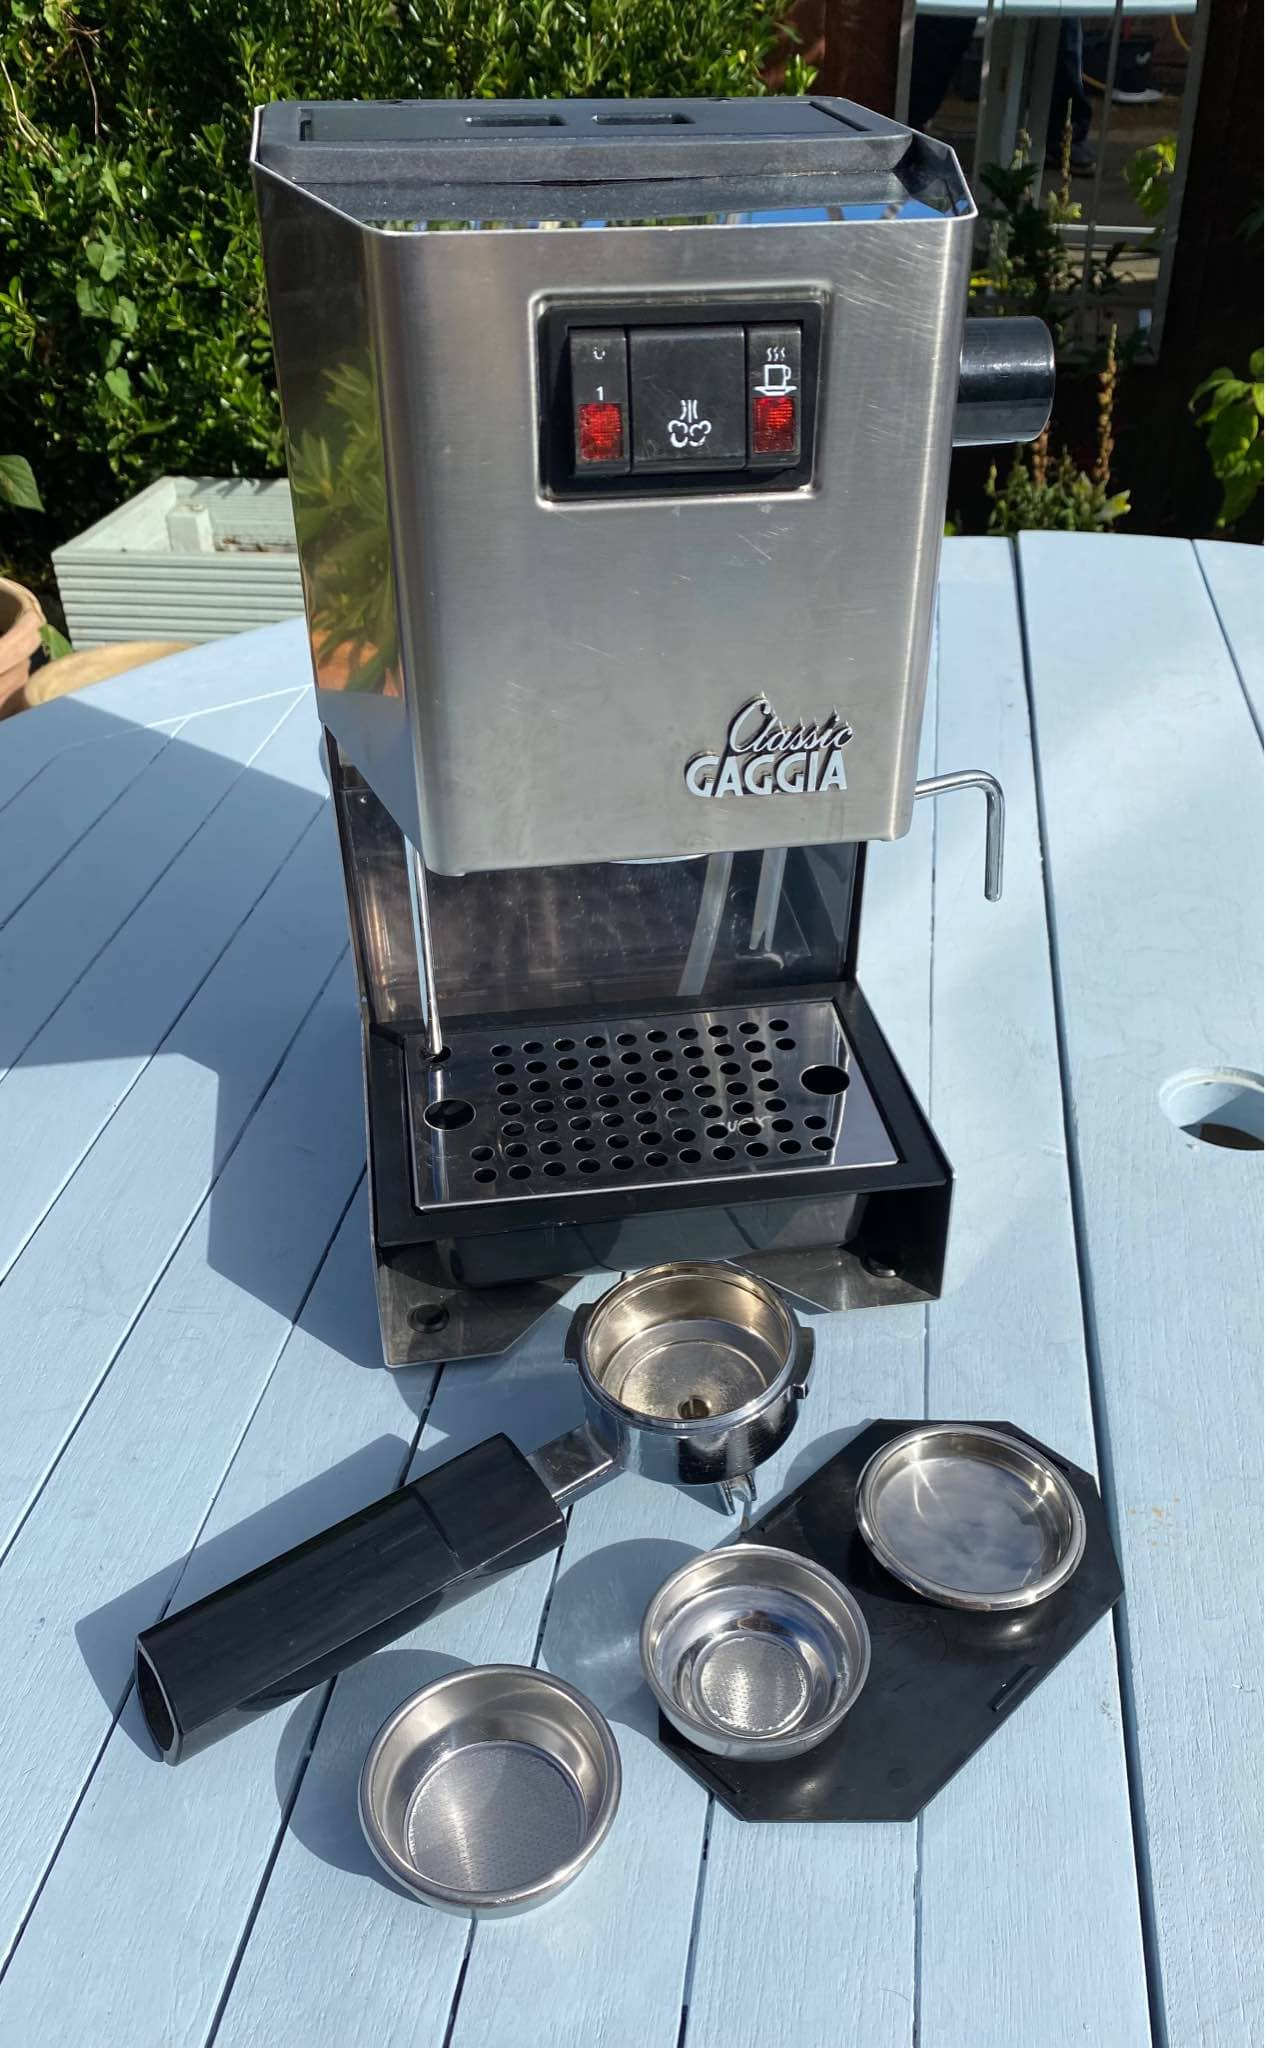 Gaggia Classic is equipped with a 72oz water tank